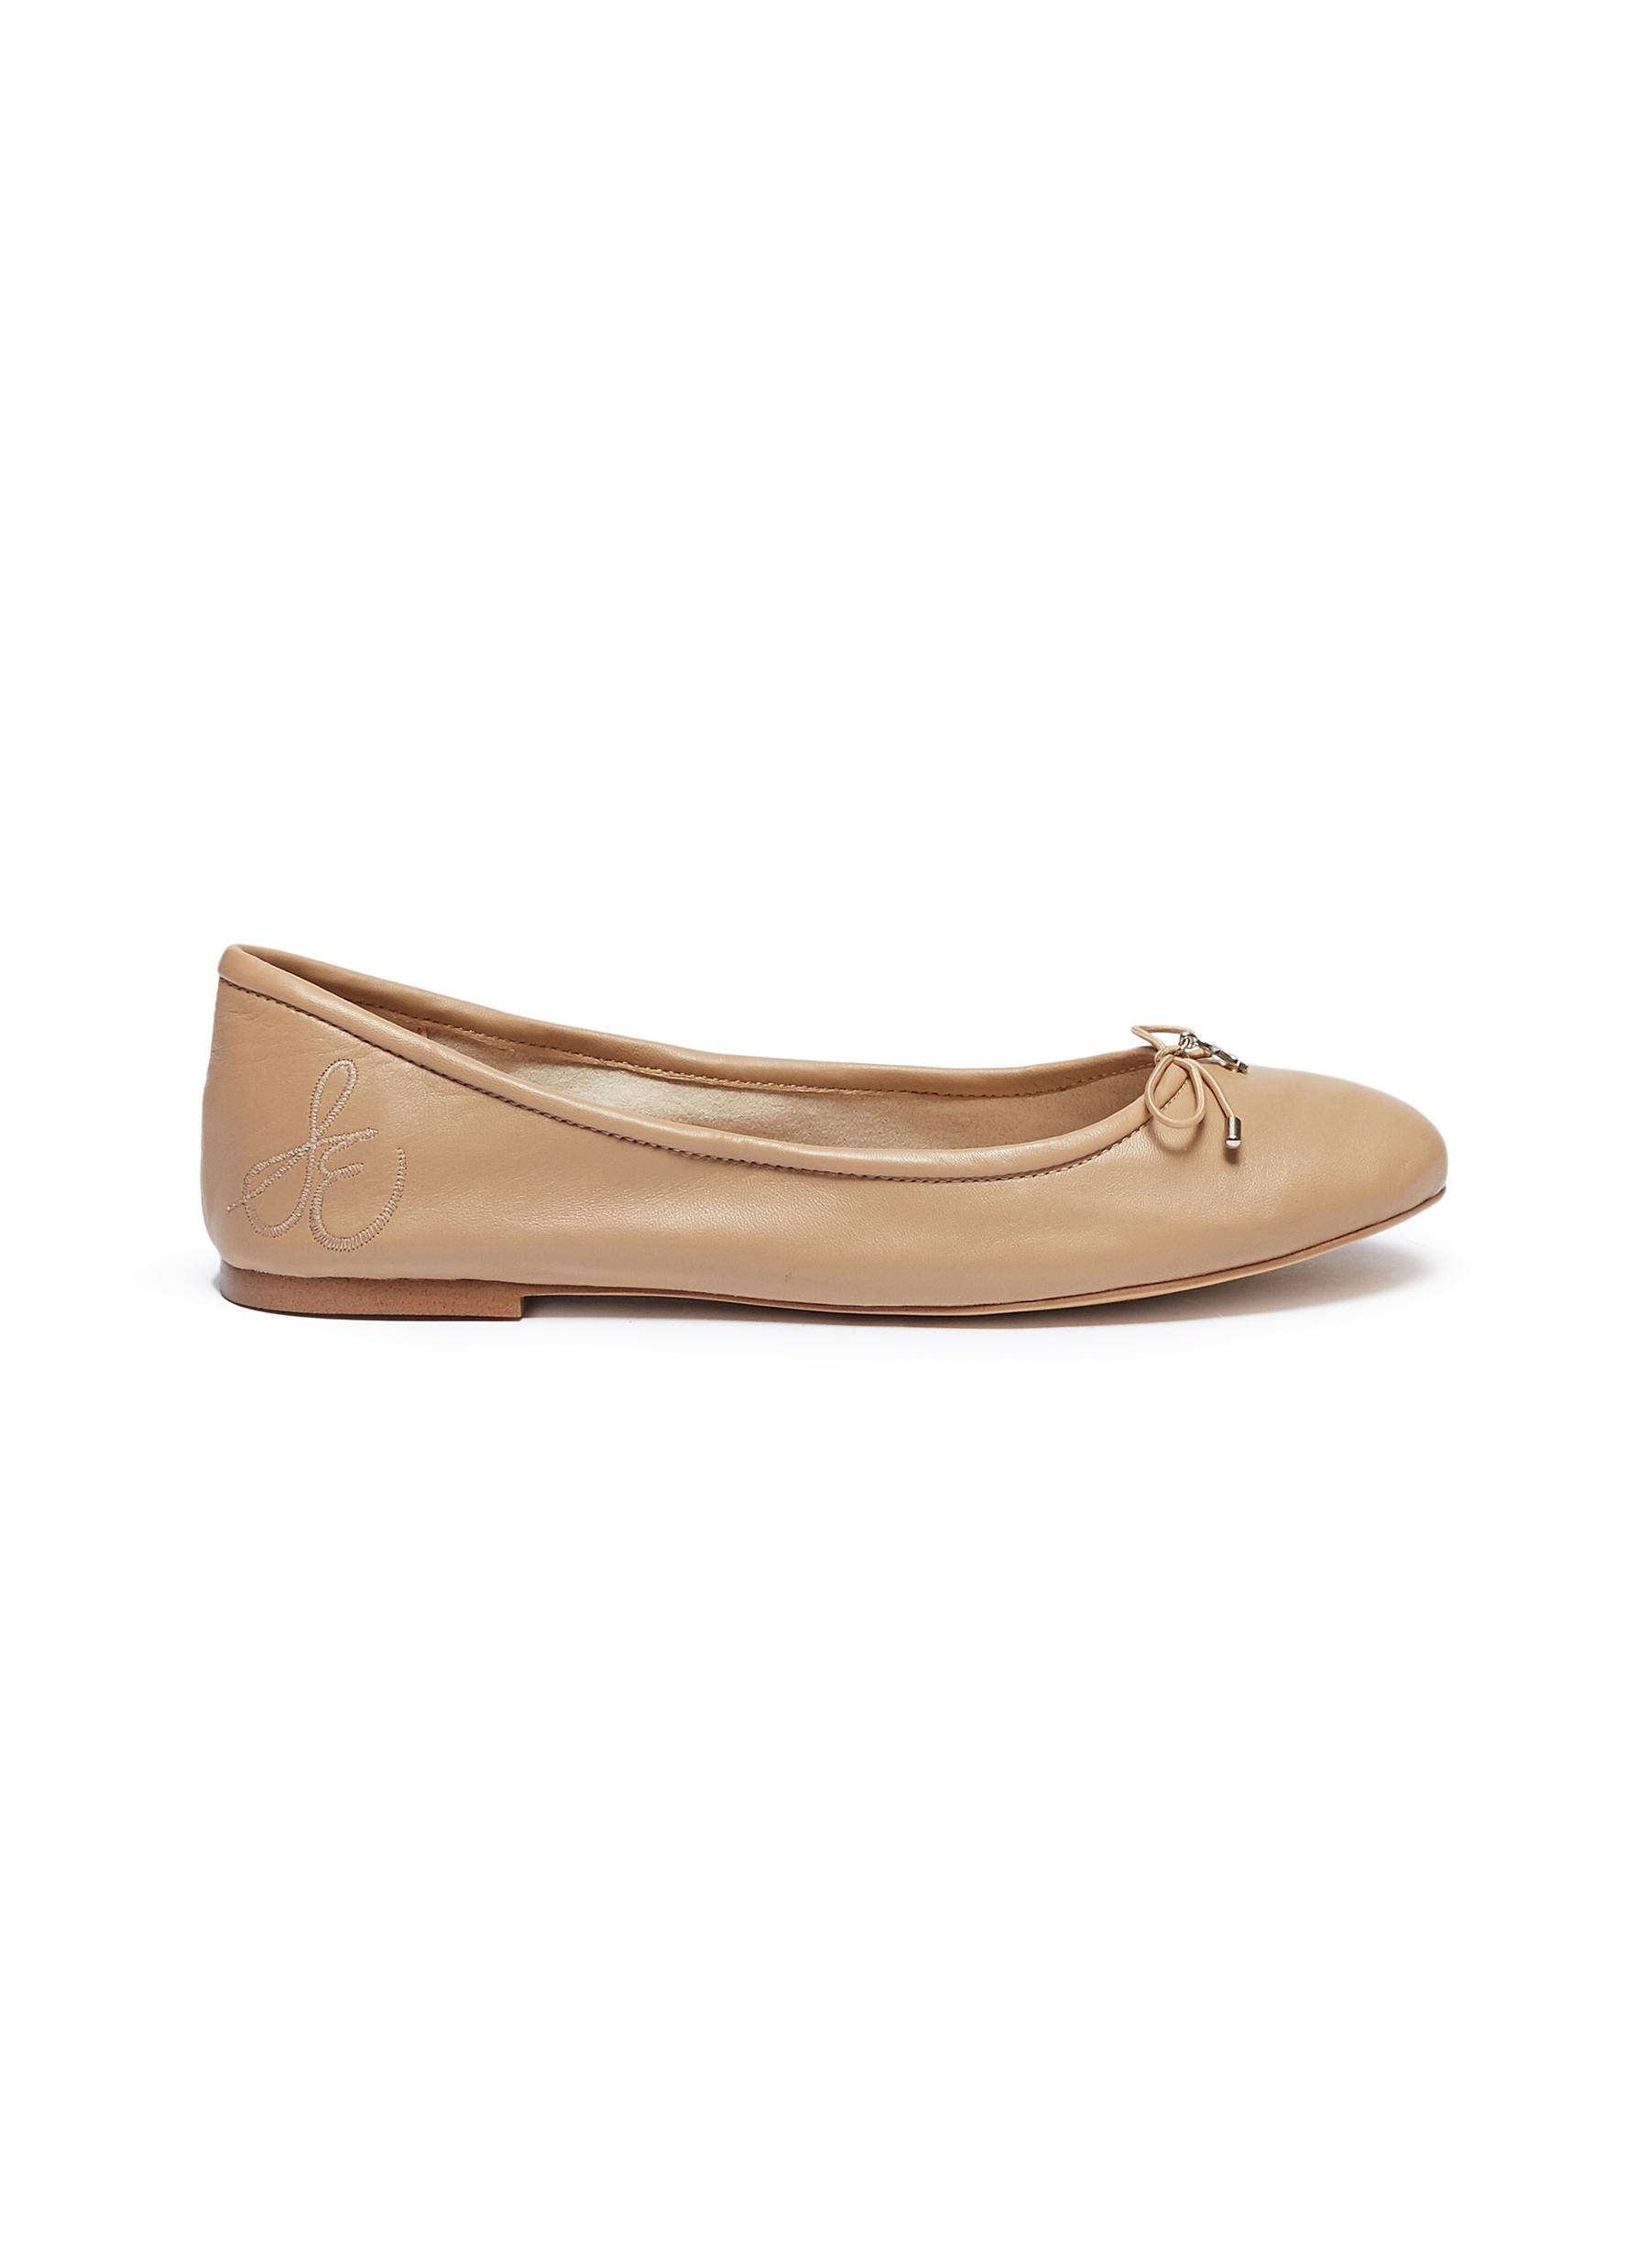 3e624351c Main View - Click To Enlarge - Sam Edelman -  Felicia  leather ballet flats